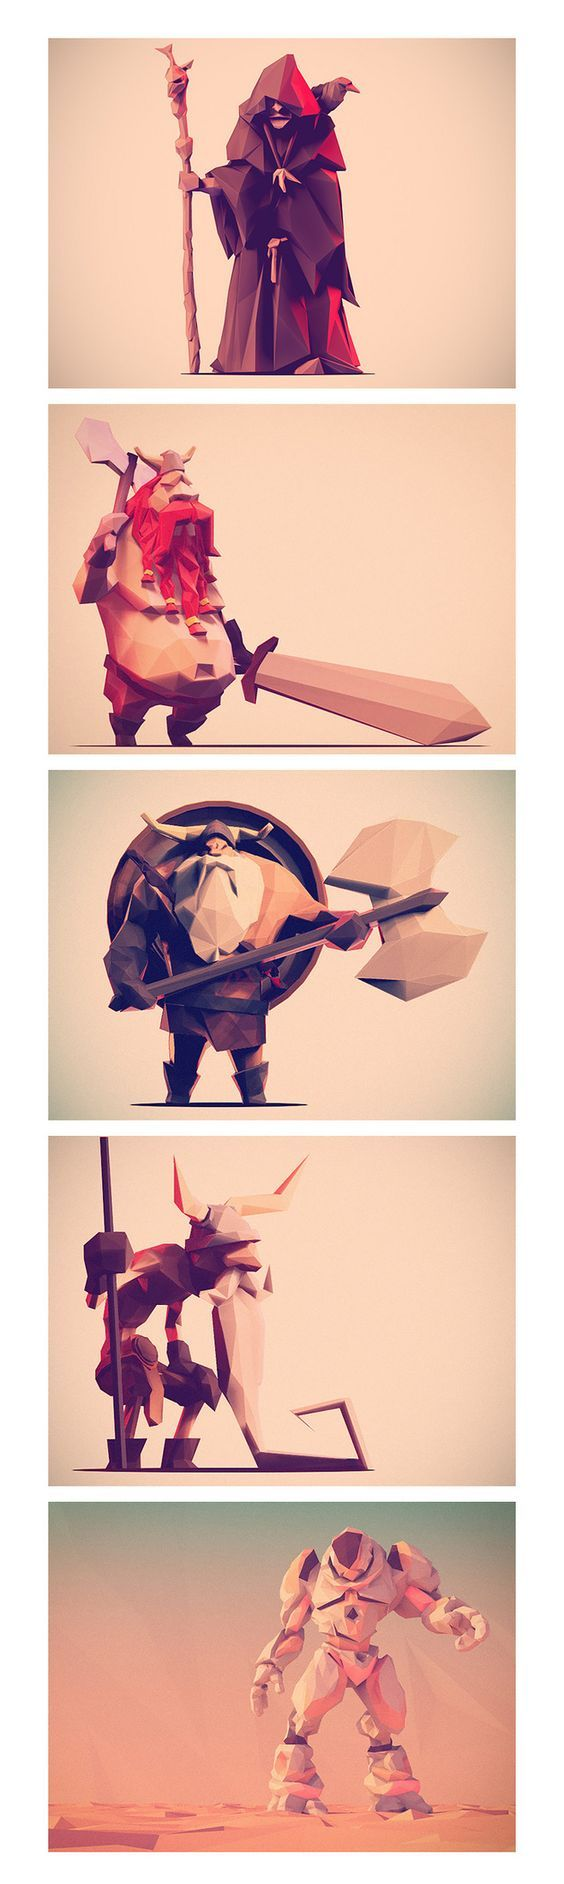 3d Character Design Tips : Low poly characters d pinterest